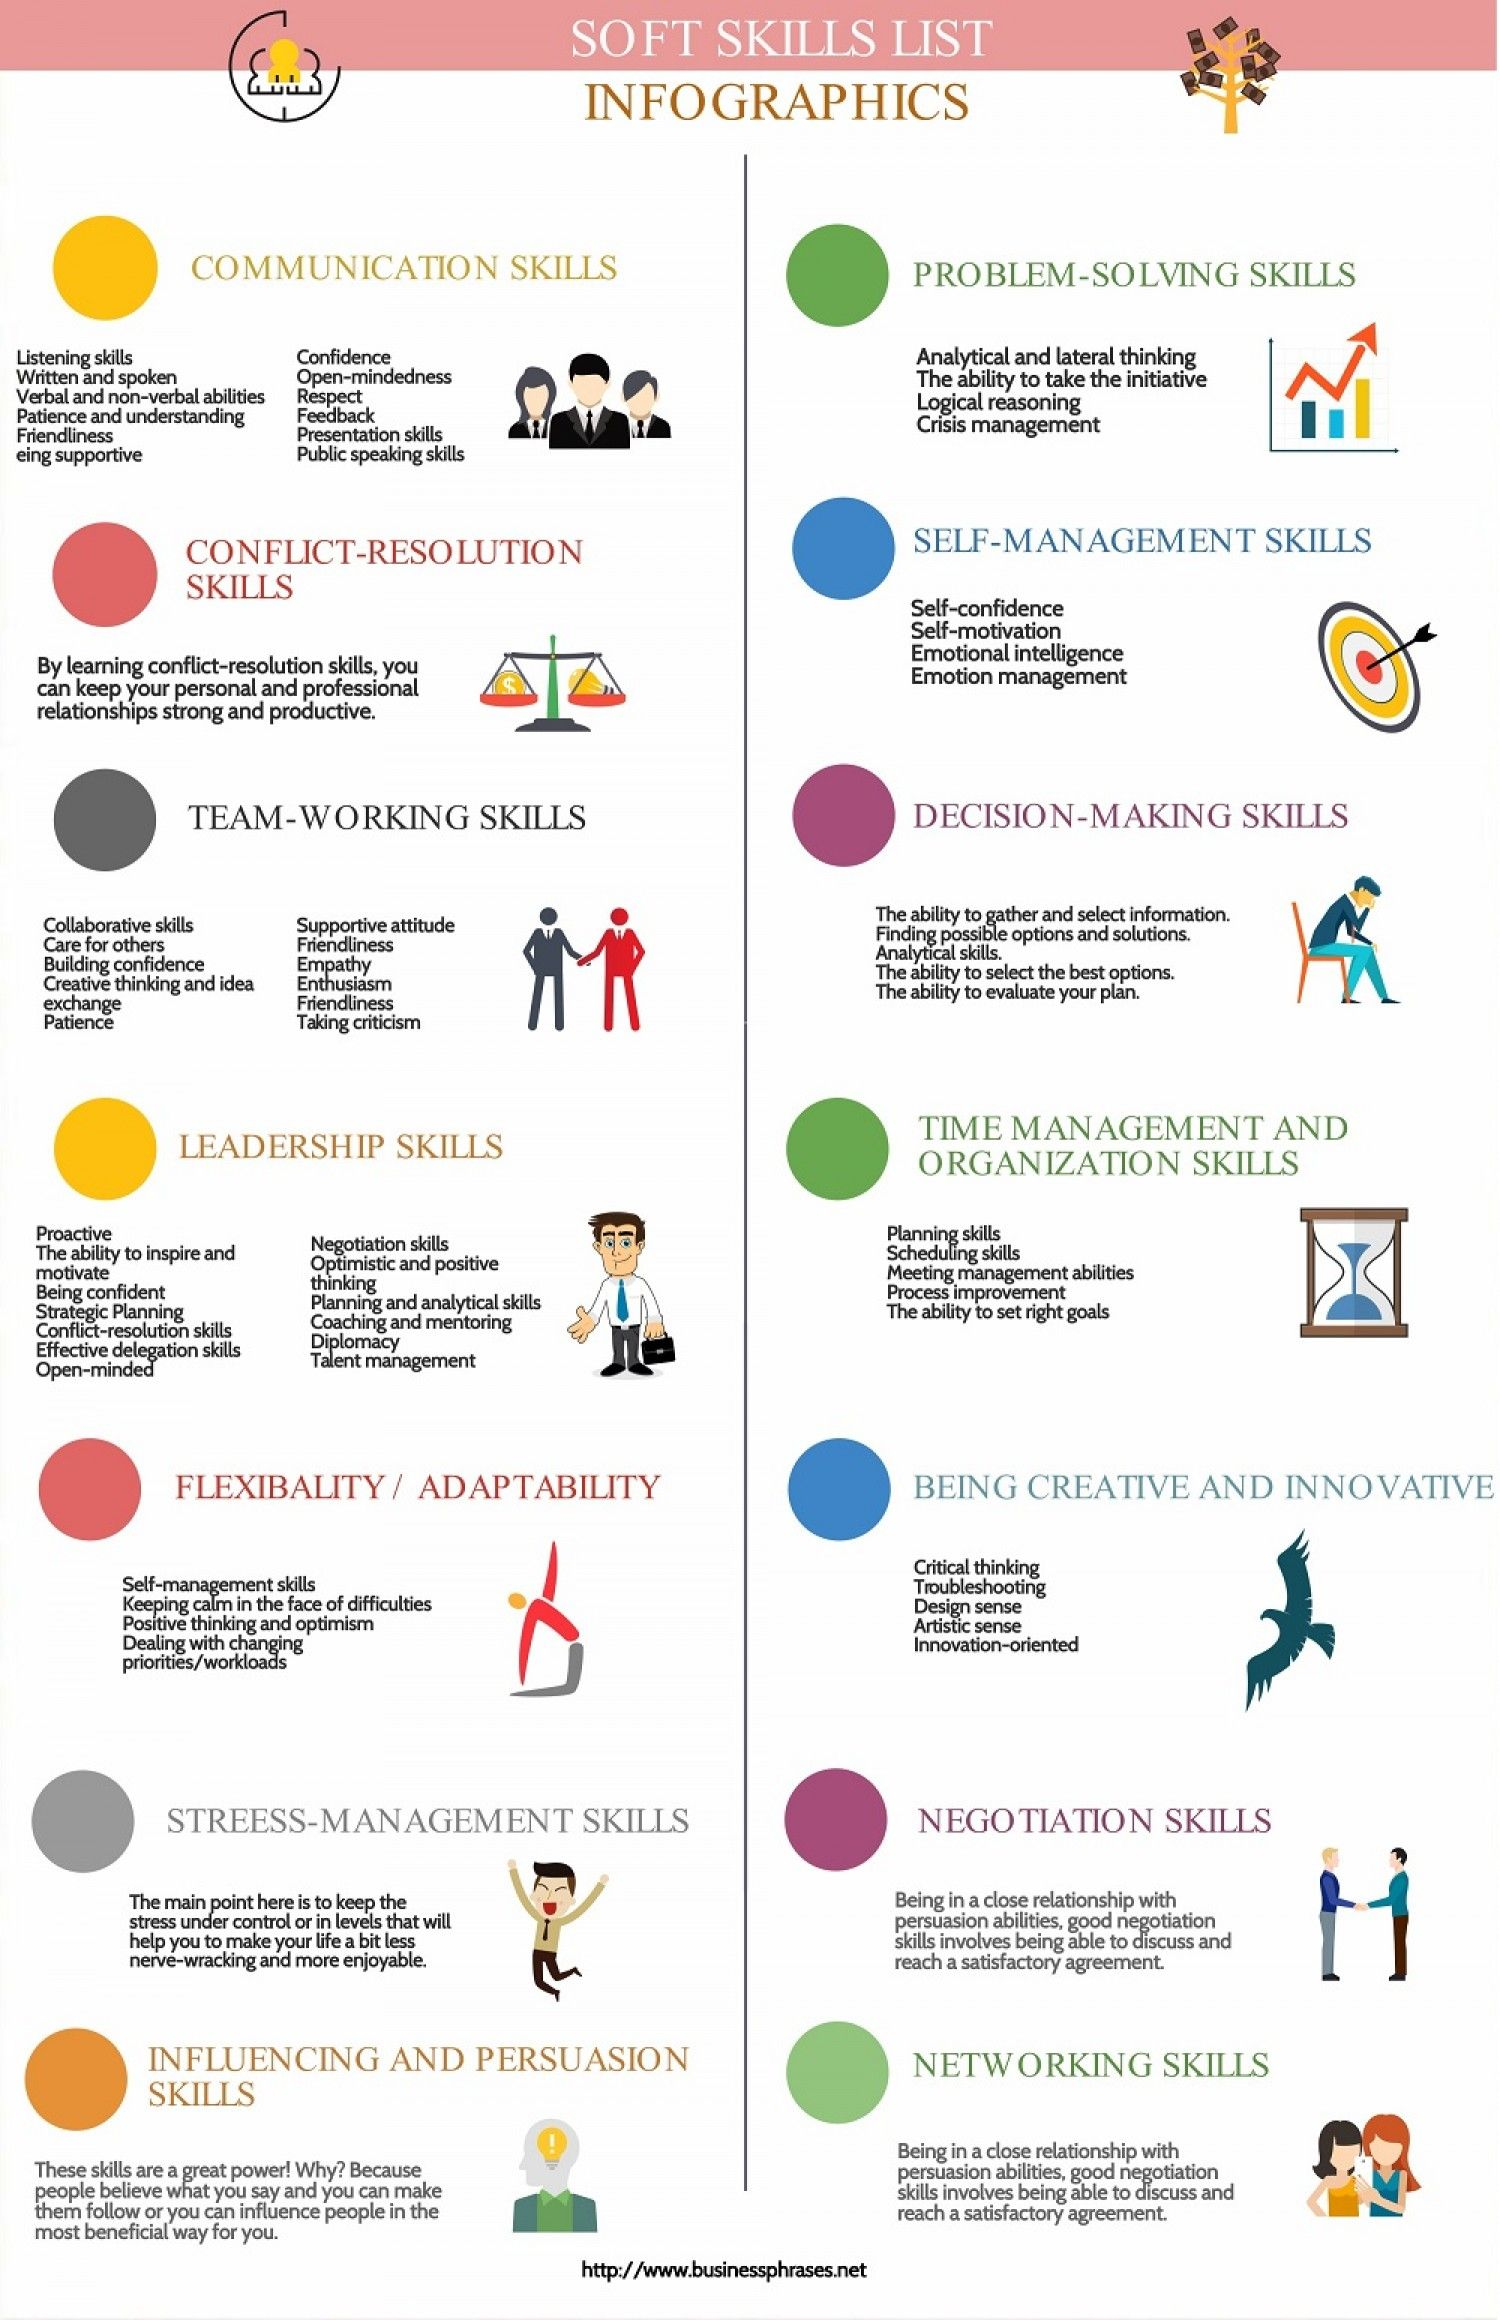 Soft Skills List Infographic 56fd2e59abc2f W